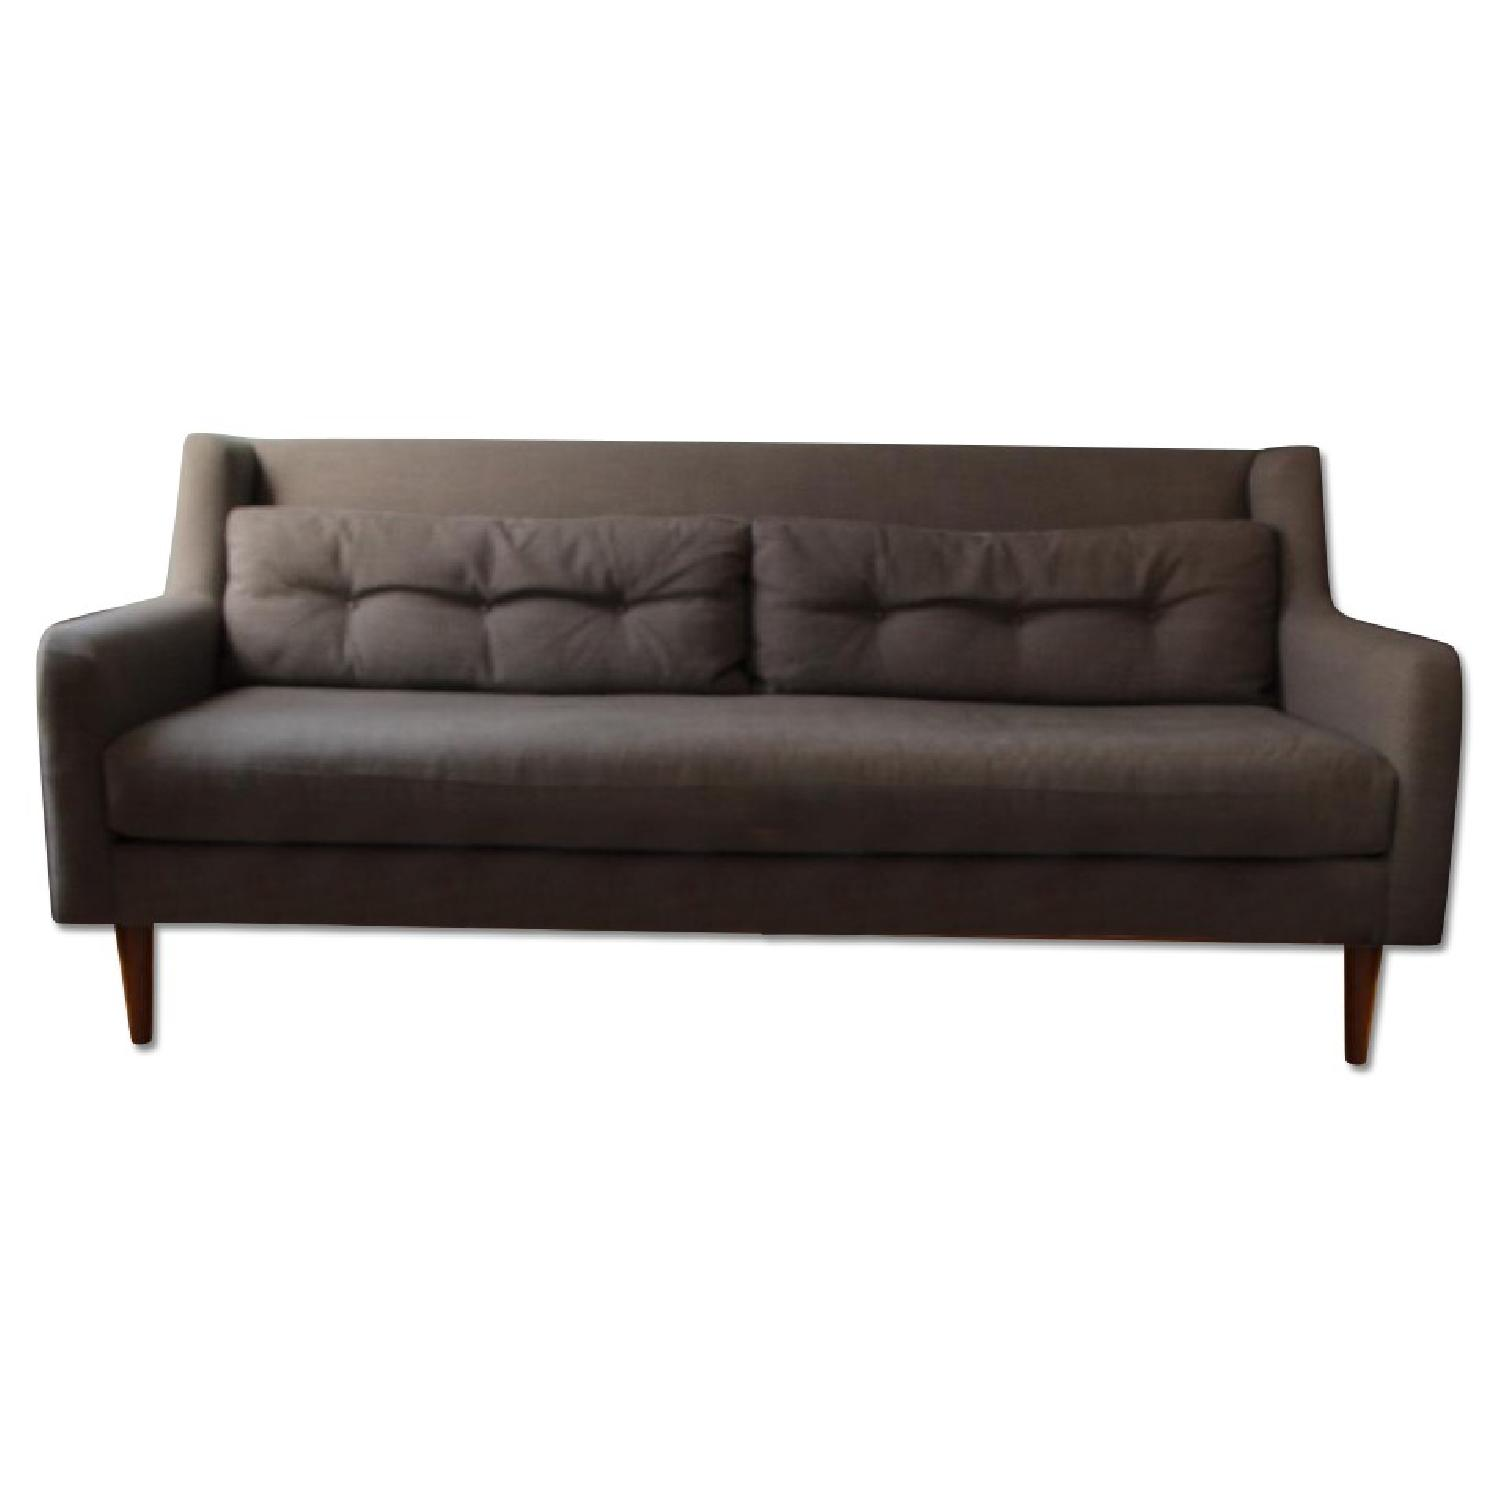 West Elm Crosby Couch